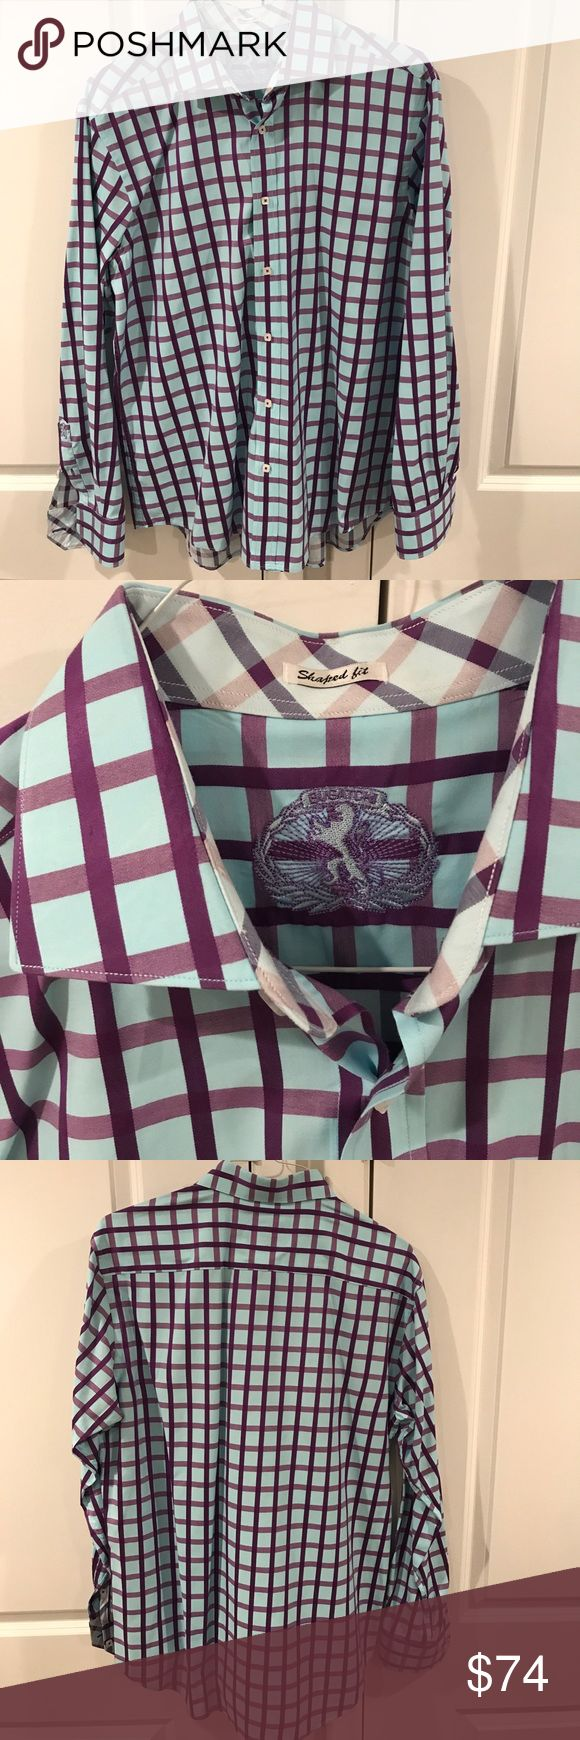 🚀 Bugatchi Uomo Large Shaped Fit Button Down Bugatchi Uomo Large Shaped Fit Button Down Shirt. This shirt has been worn very few times and is in excellent condition. Please ask if you have any questions and bundle for a better deal! Thank you 🚀 Bugatchi Shirts Casual Button Down Shirts